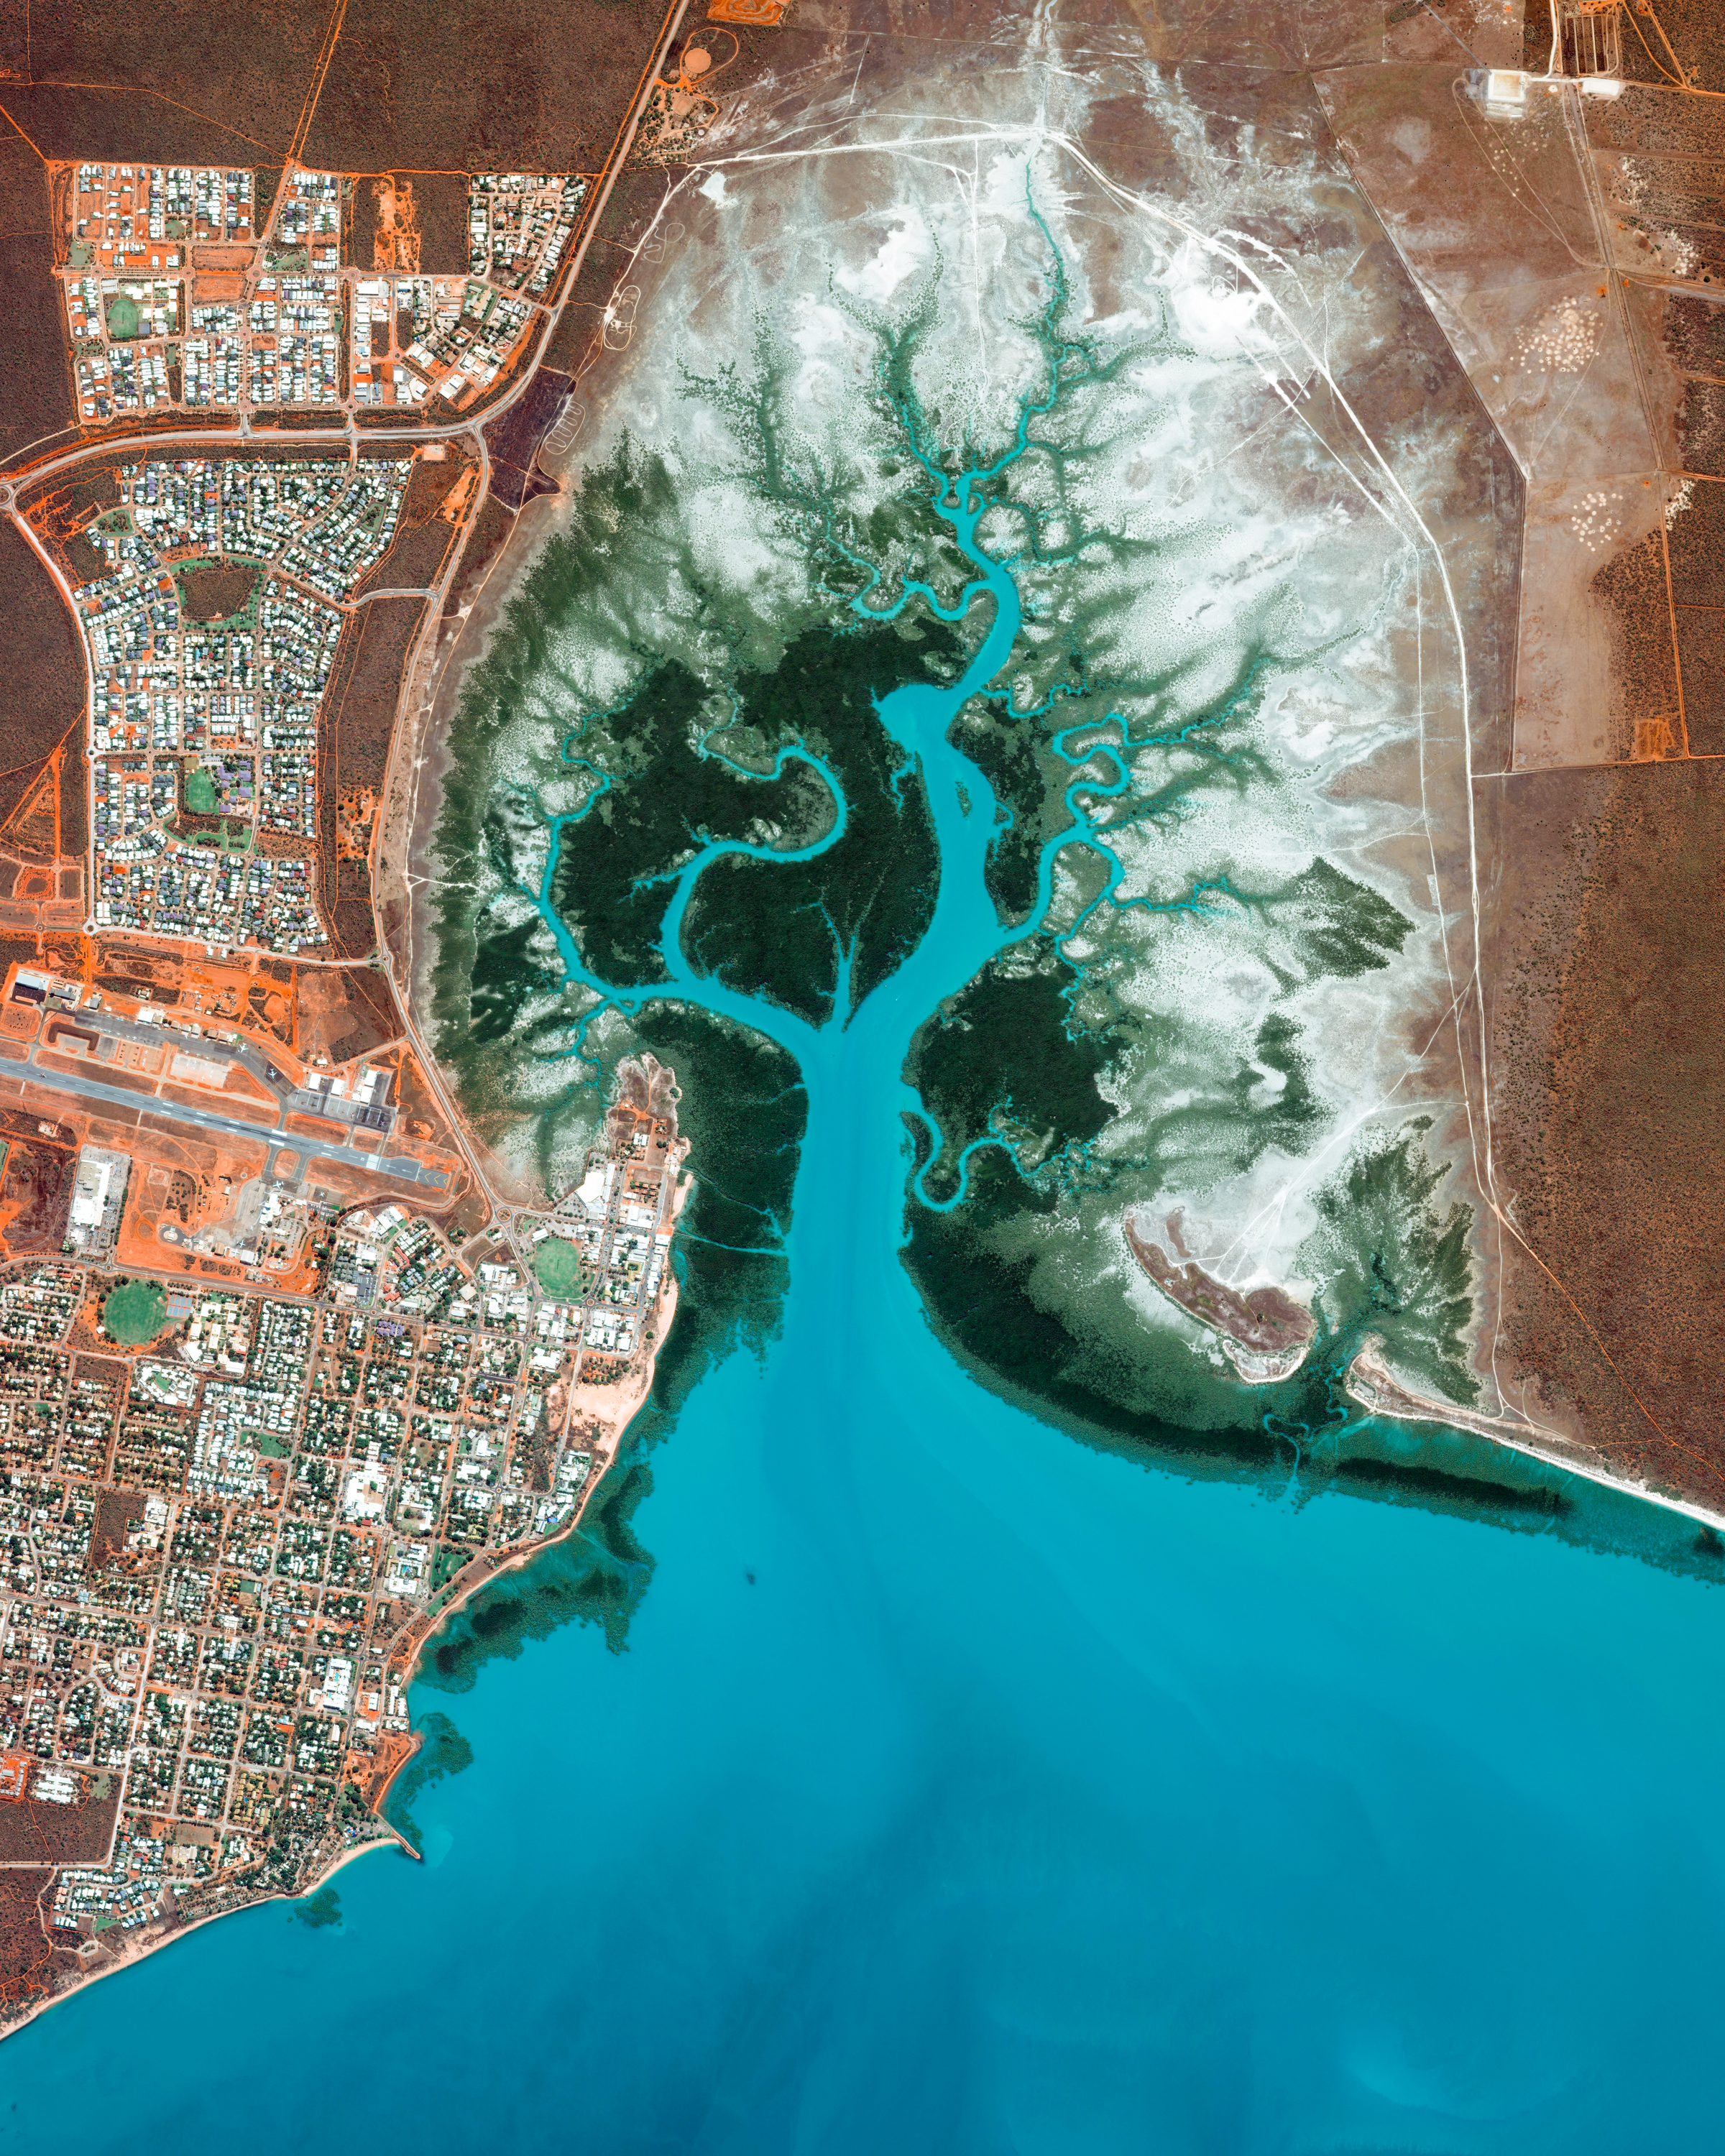 """Dampier Creek winds its way inland to form the eastern border of Broome, a coastal town in Western Australia. Broome is home to roughly 14,000 people, but its population can grow to upwards of 45,000 per month during peak tourist season from June to August. Its 14-mile (22-km) white-sand Cable Beach, paleontology exhibits, pearl farms, and other attractions make it a popular destination for travelers around the world.  17°57'32.4""""S, 122°14'49.8""""E  Source imagery: DigitalGlobe"""